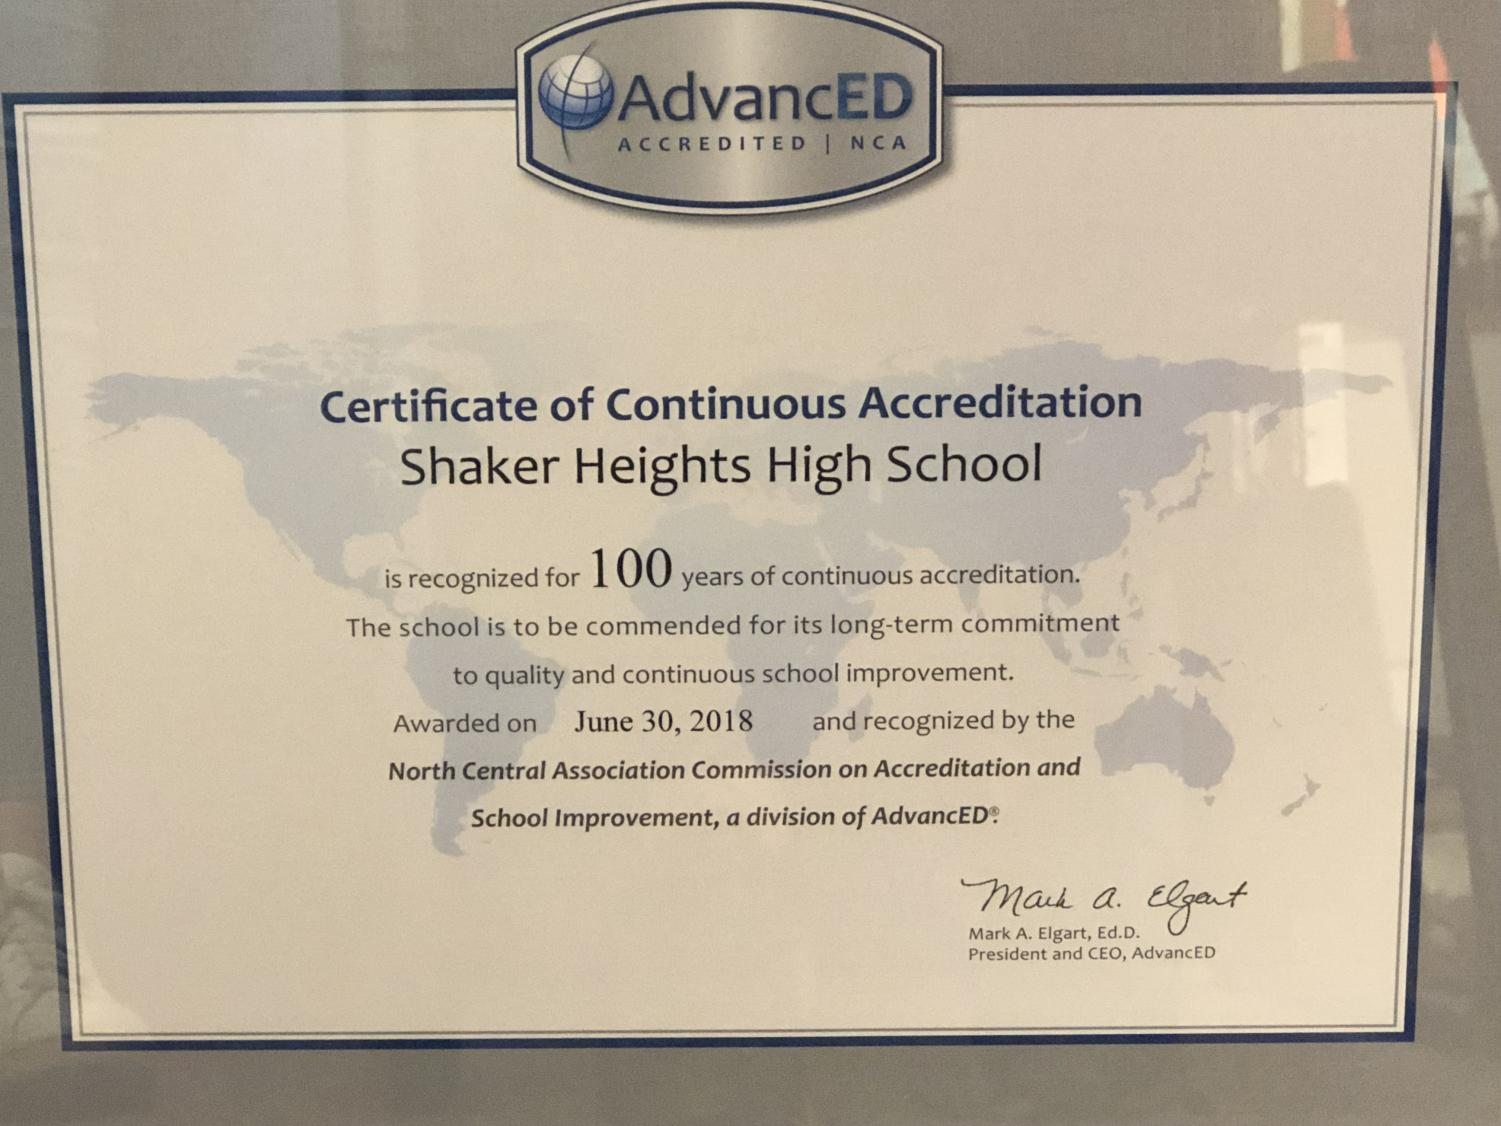 This certificate is recognizing the district being successfully accredited for 100 years, which is hanging in Assistant Principal Sara Chengelis' office. Accreditation is a voluntary service created more than 100 years ago that helps determine the quality of a school and helps discern stronger schools from struggling schools.